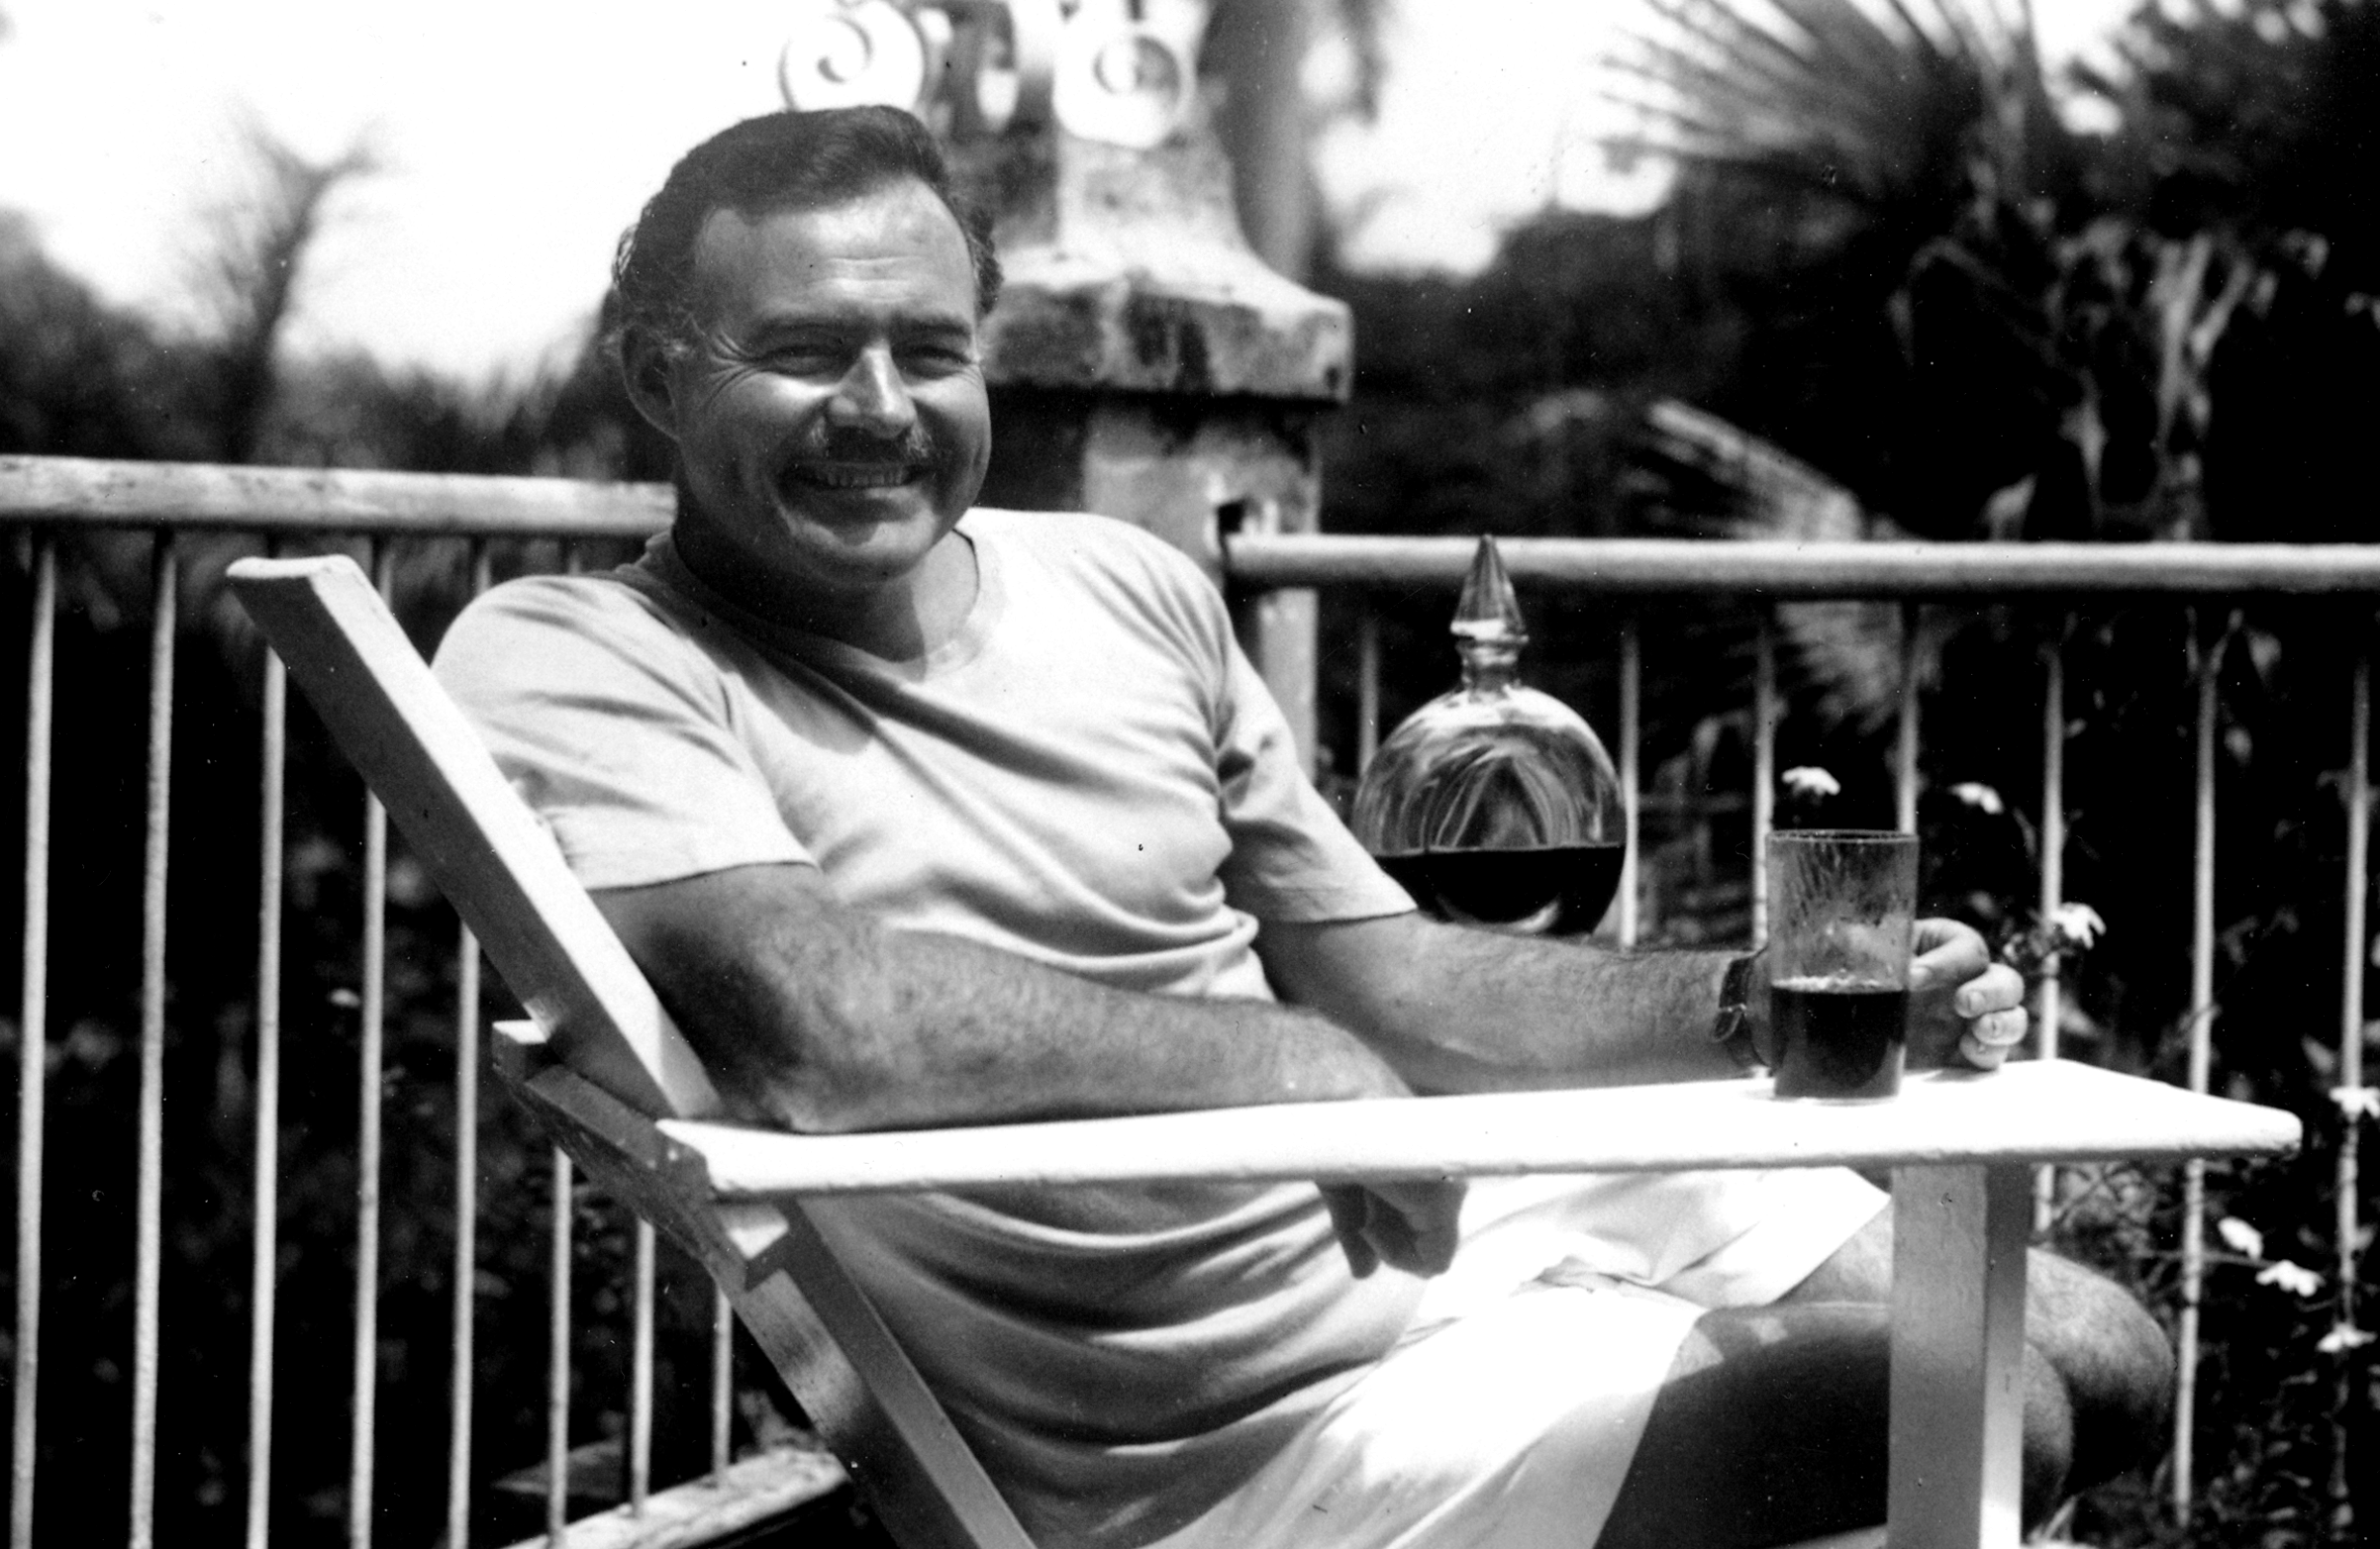 Ernest_Hemingway_at_the_Finca_Vigia,_Cuba_1946